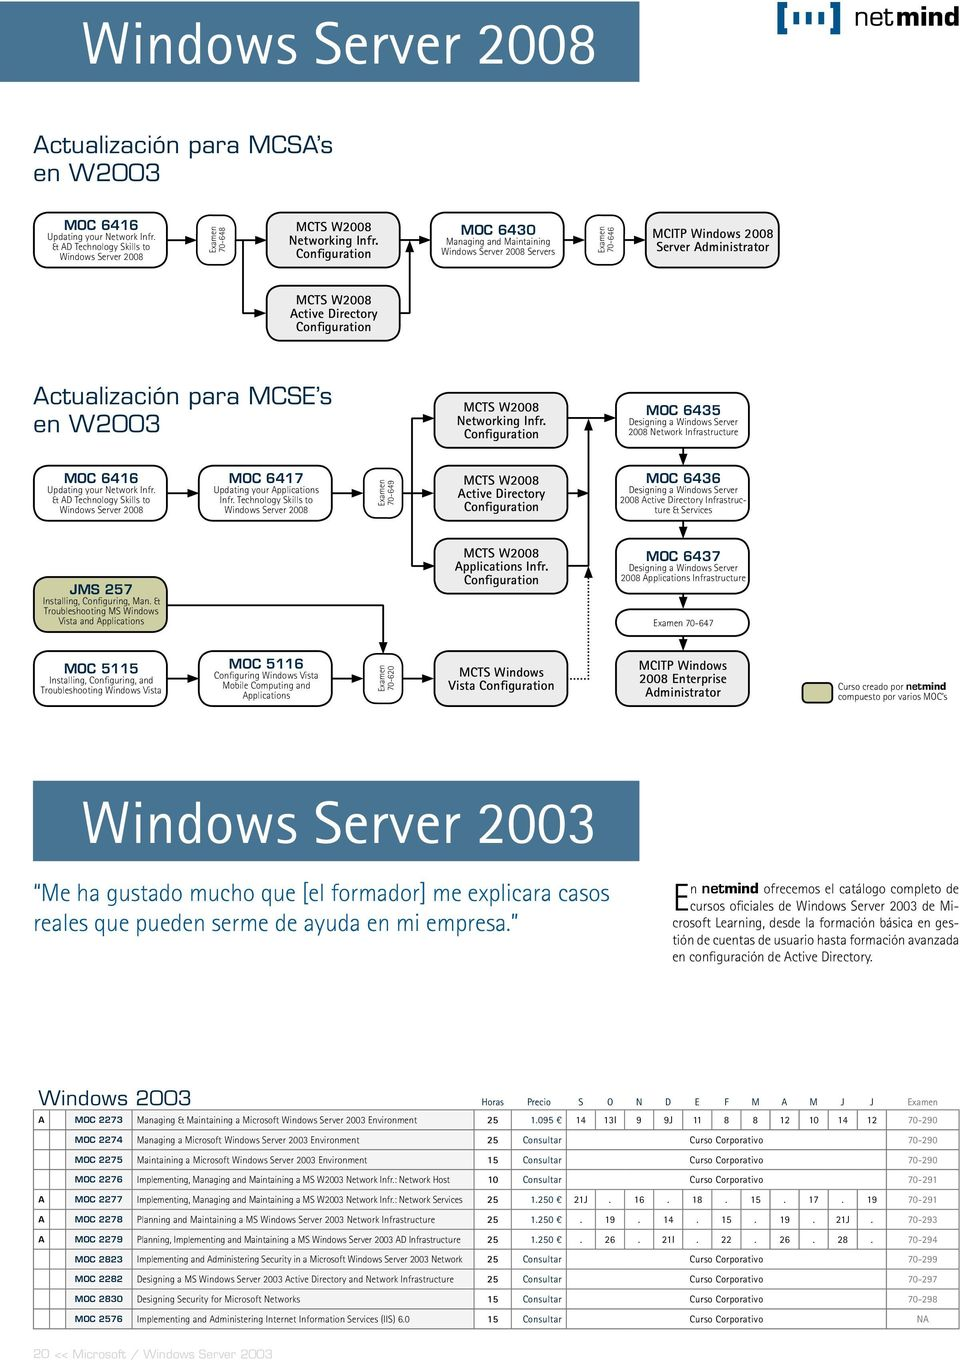 MCTS W2008 Networking Infr. Configuration MOC 6435 Designing a Windows Server 2008 Network Infrastructure MOC 6416 Updating your Network Infr.